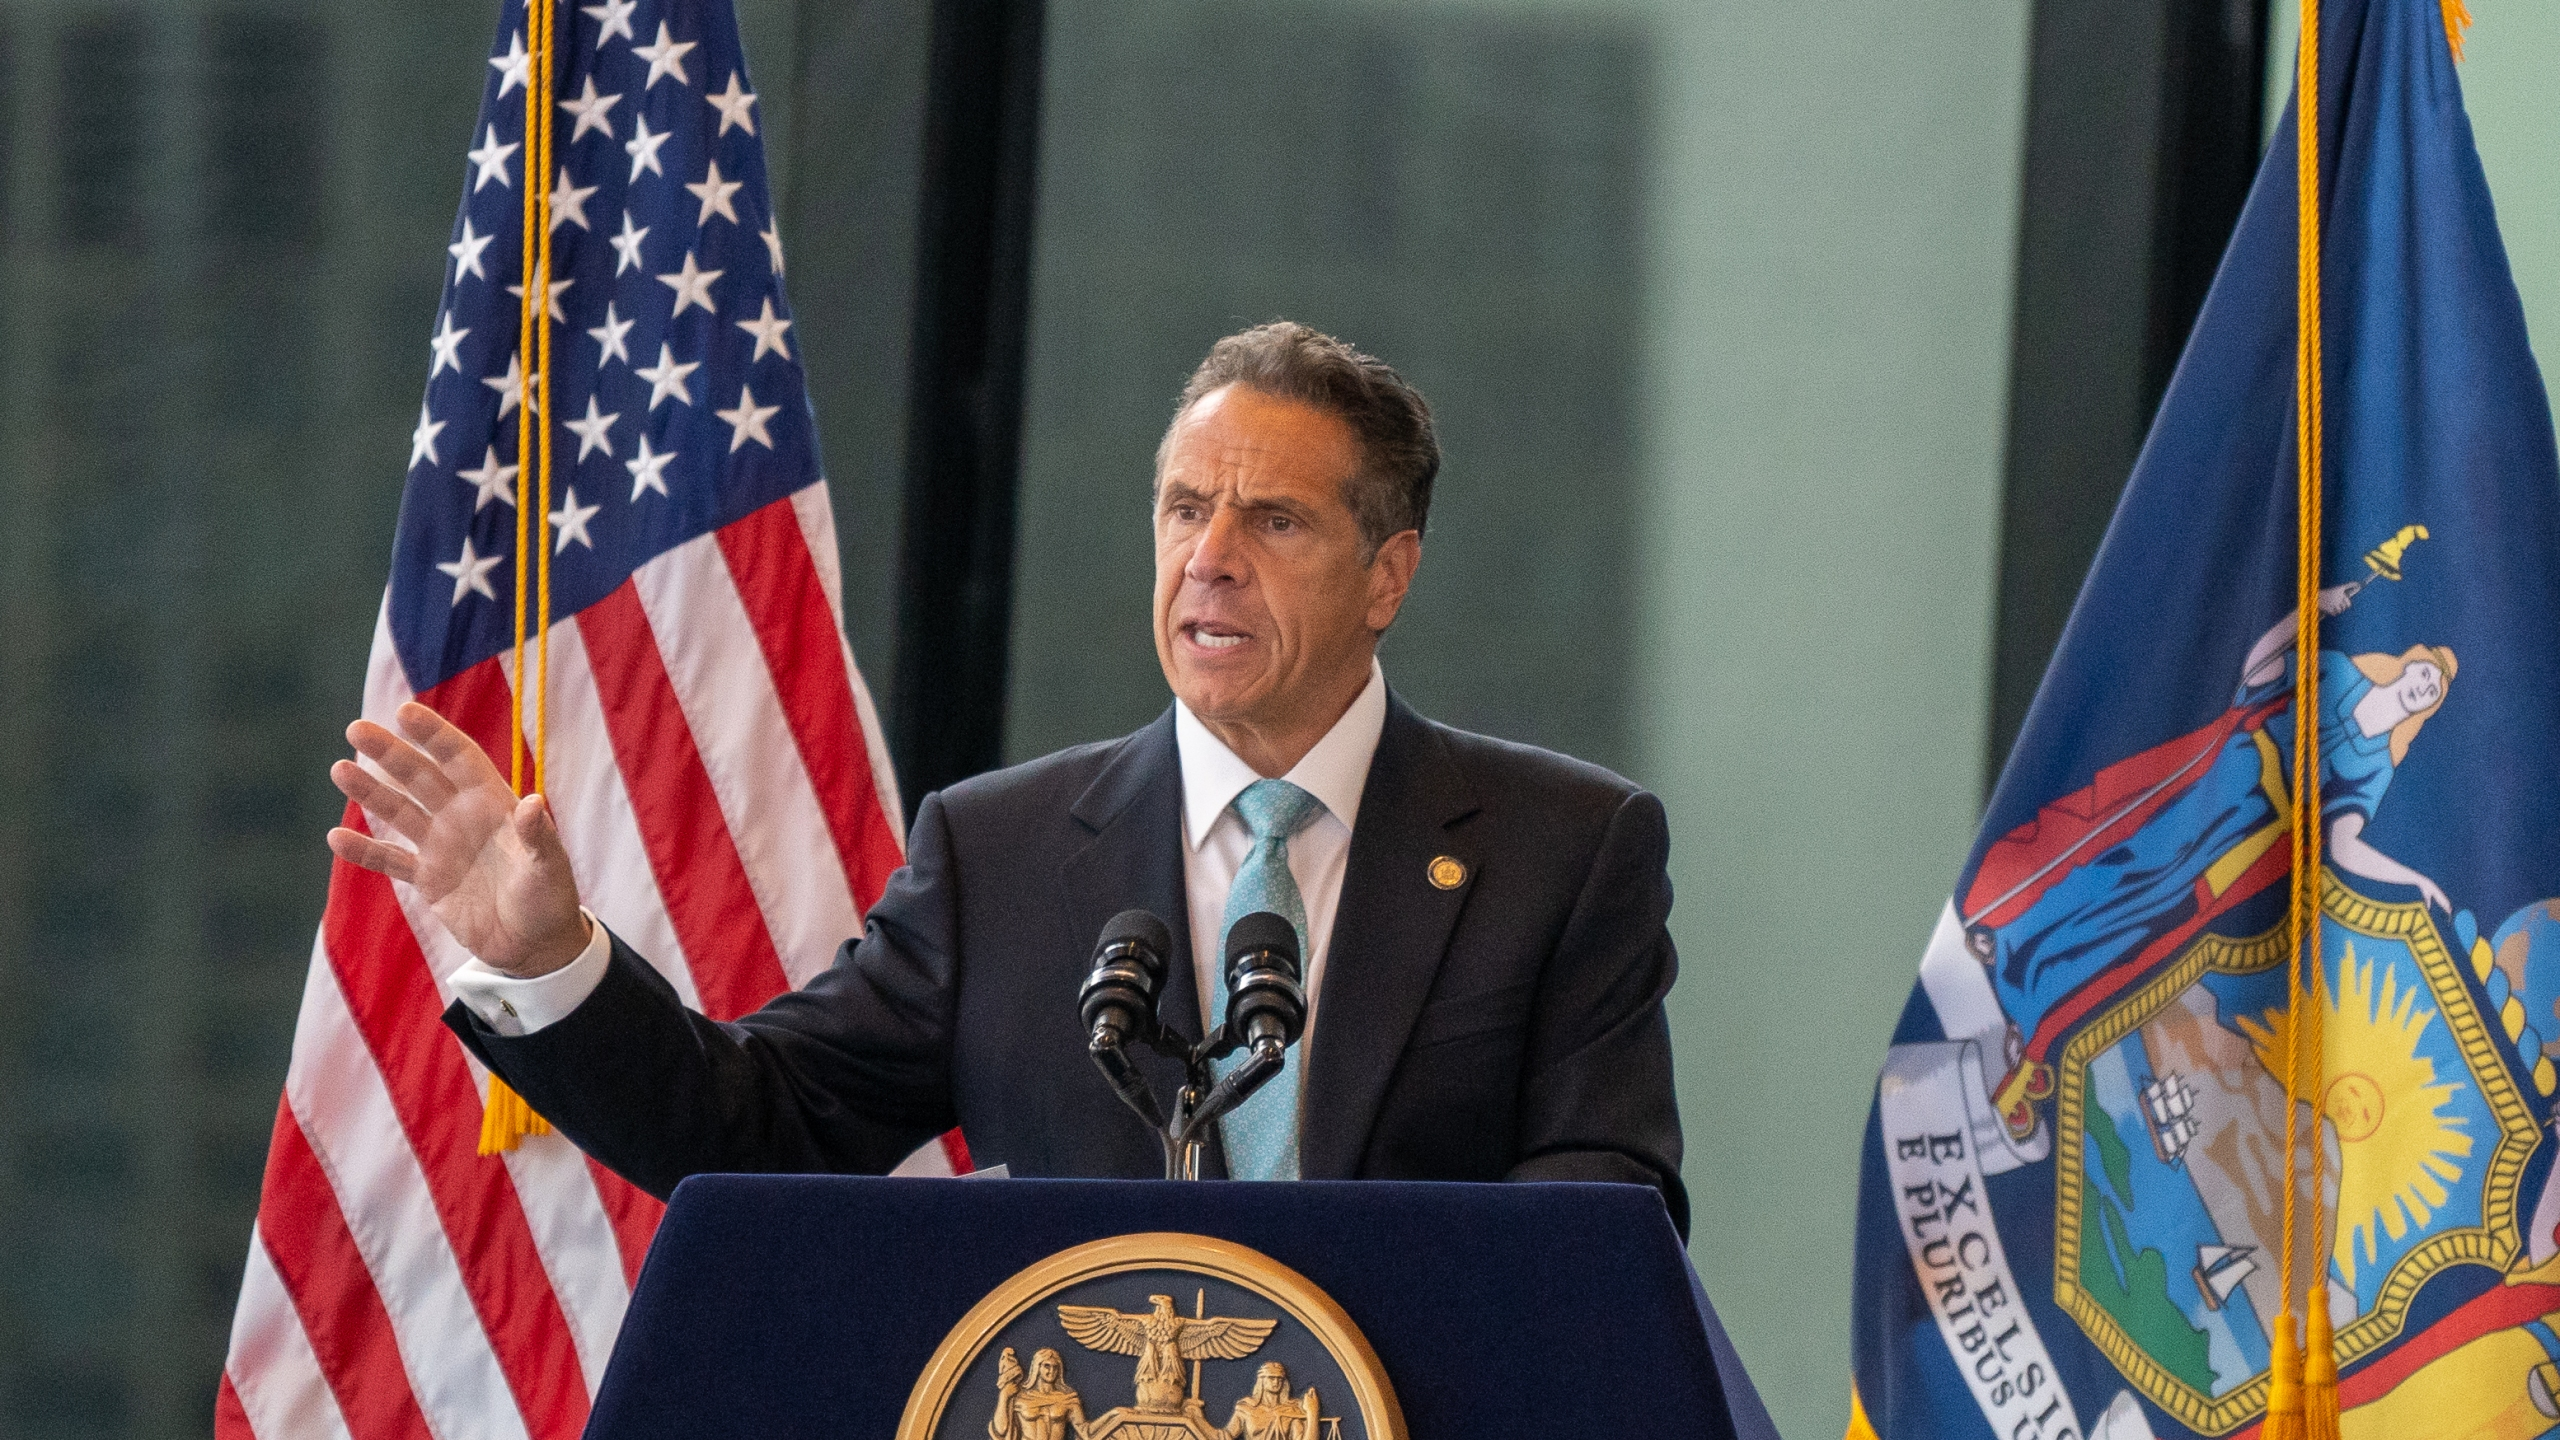 New York Gov. Andrew Cuomo speaks during a press conference at One World Trade Center on June 15, 2021 in New York City. (David Dee Delgado/Getty Images)